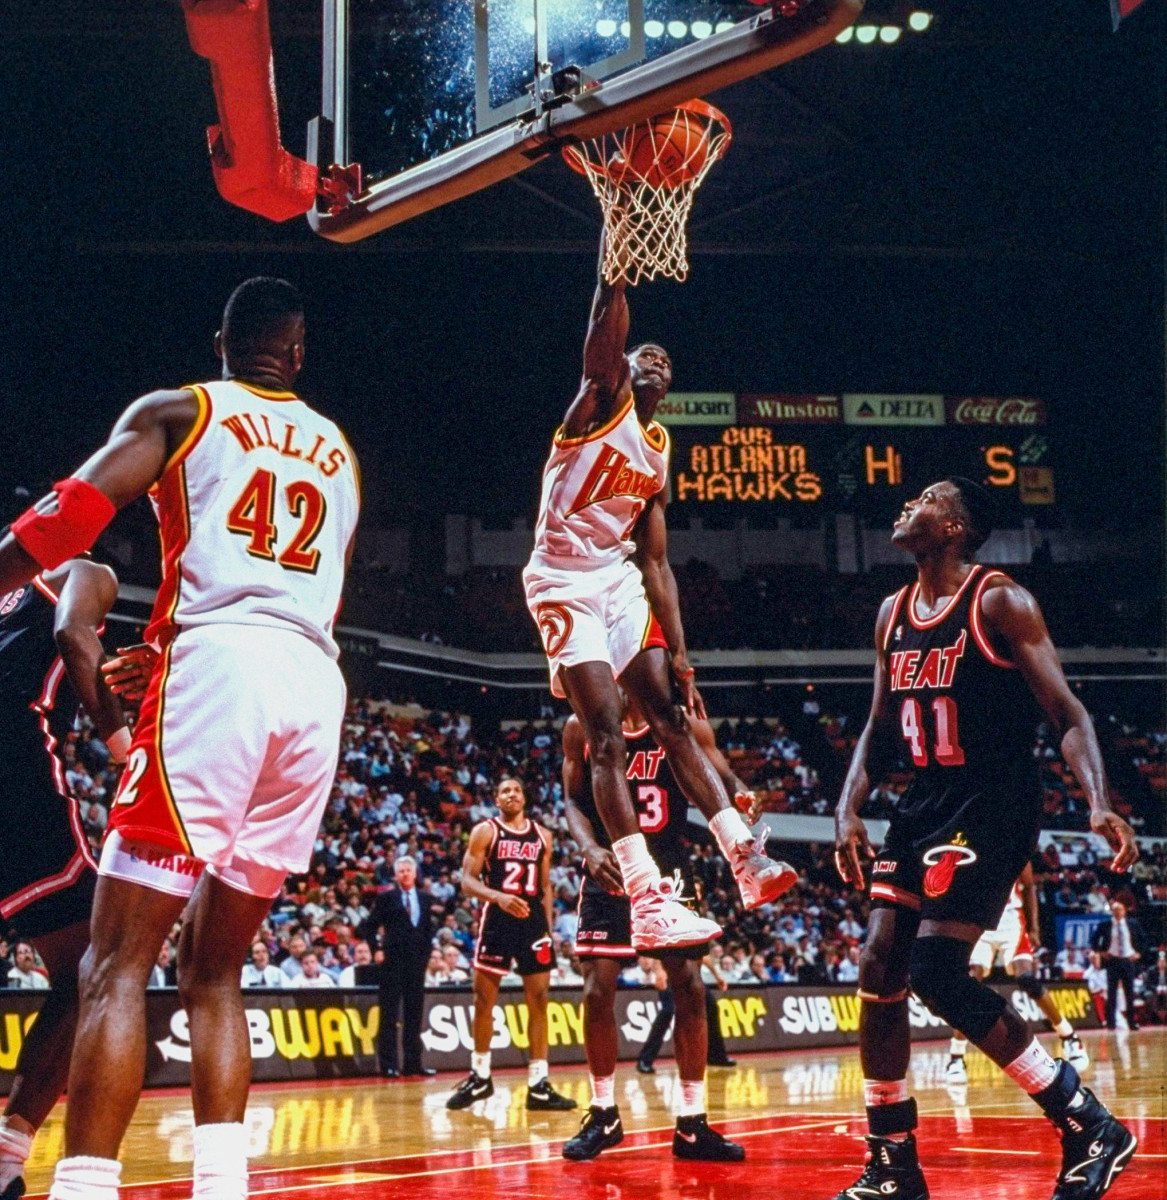 Dominique Wilkins was the last Hawk to be an undisputed superstar.